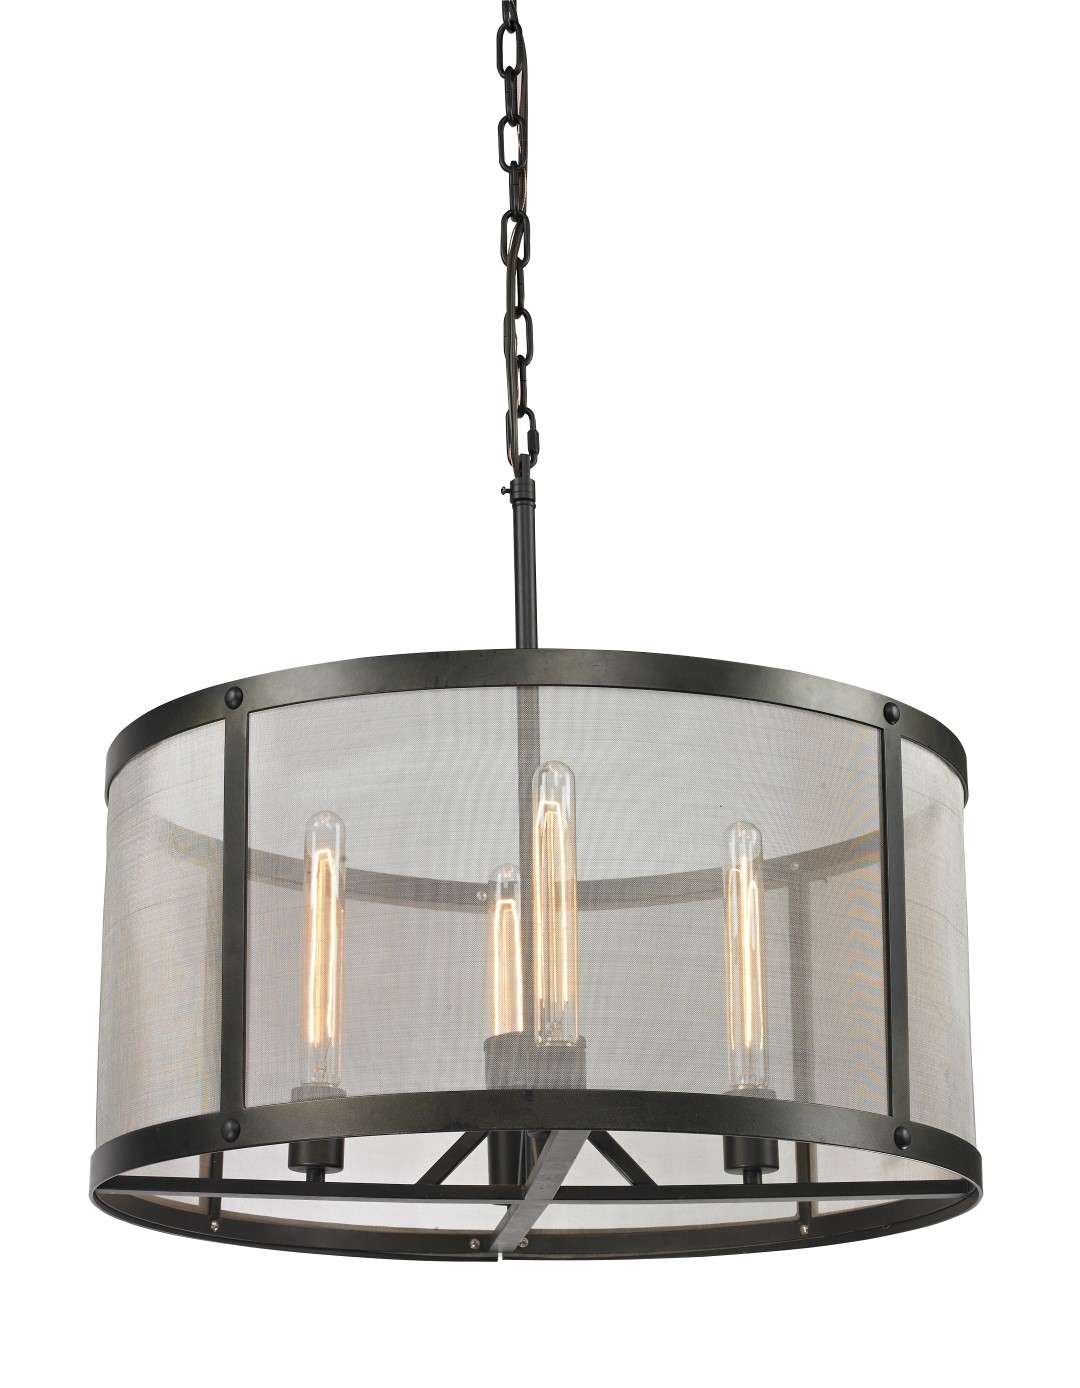 The Charleston Mesh Chandelier Provides A Warm And Inviting Intended For Lucinda Branch Chandelier (Image 12 of 15)